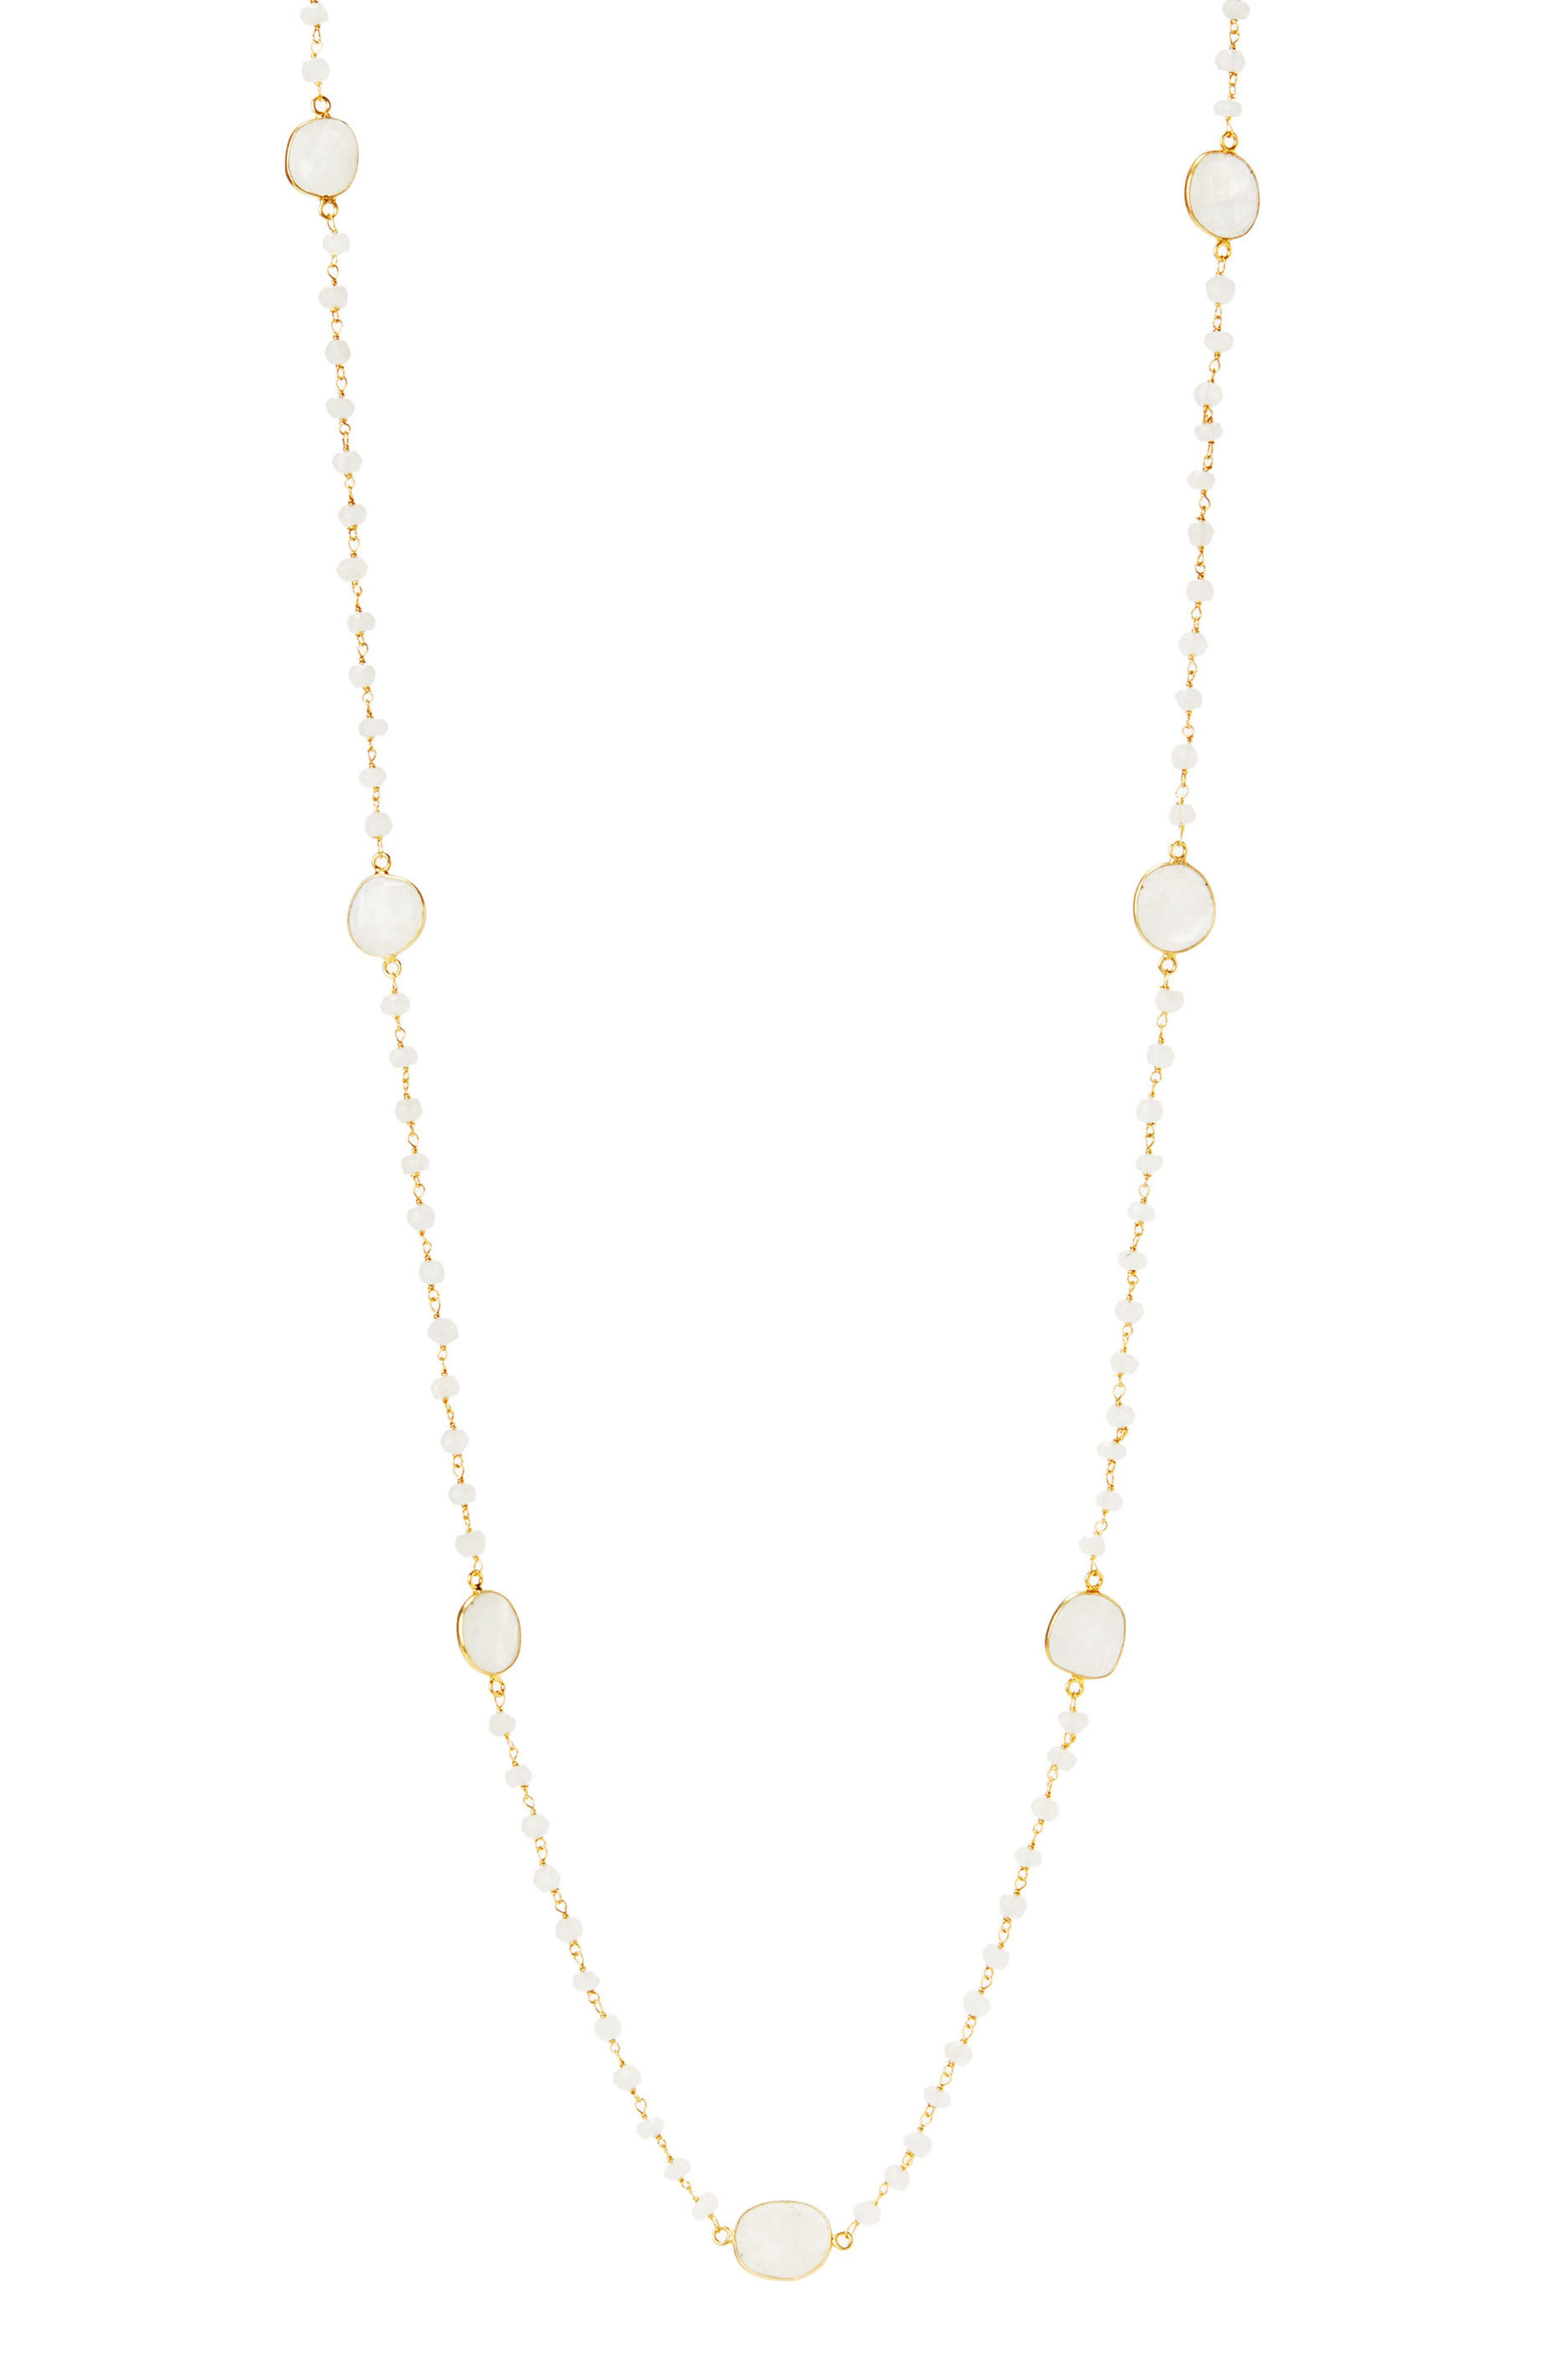 Neivs Station Necklace,                         Main,                         color, Moonstone